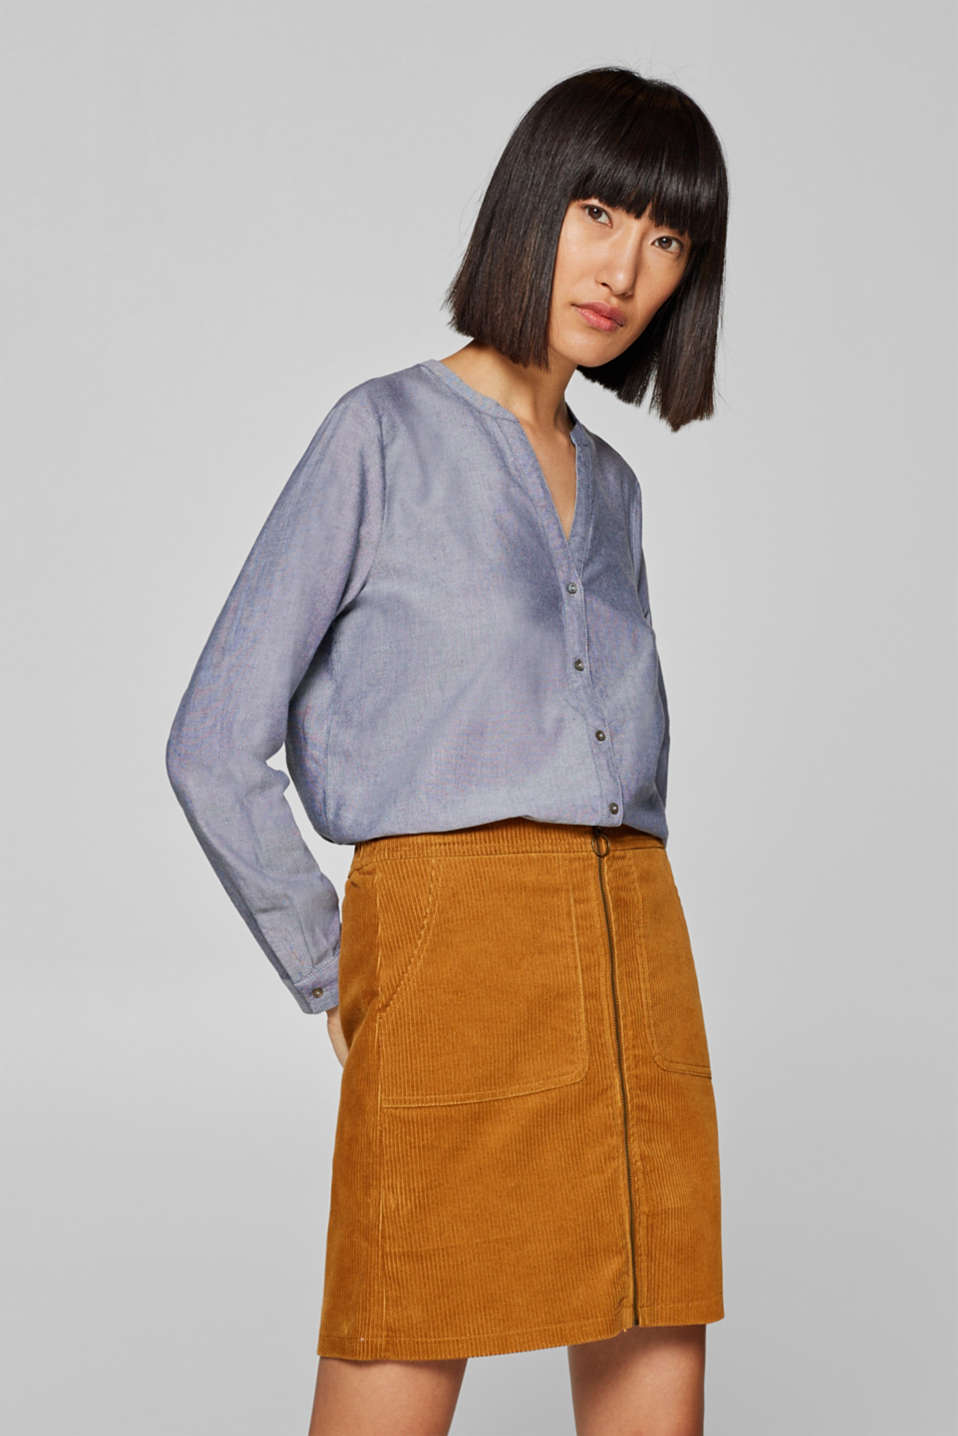 edc - Casual Oxford blouse, 100% cotton